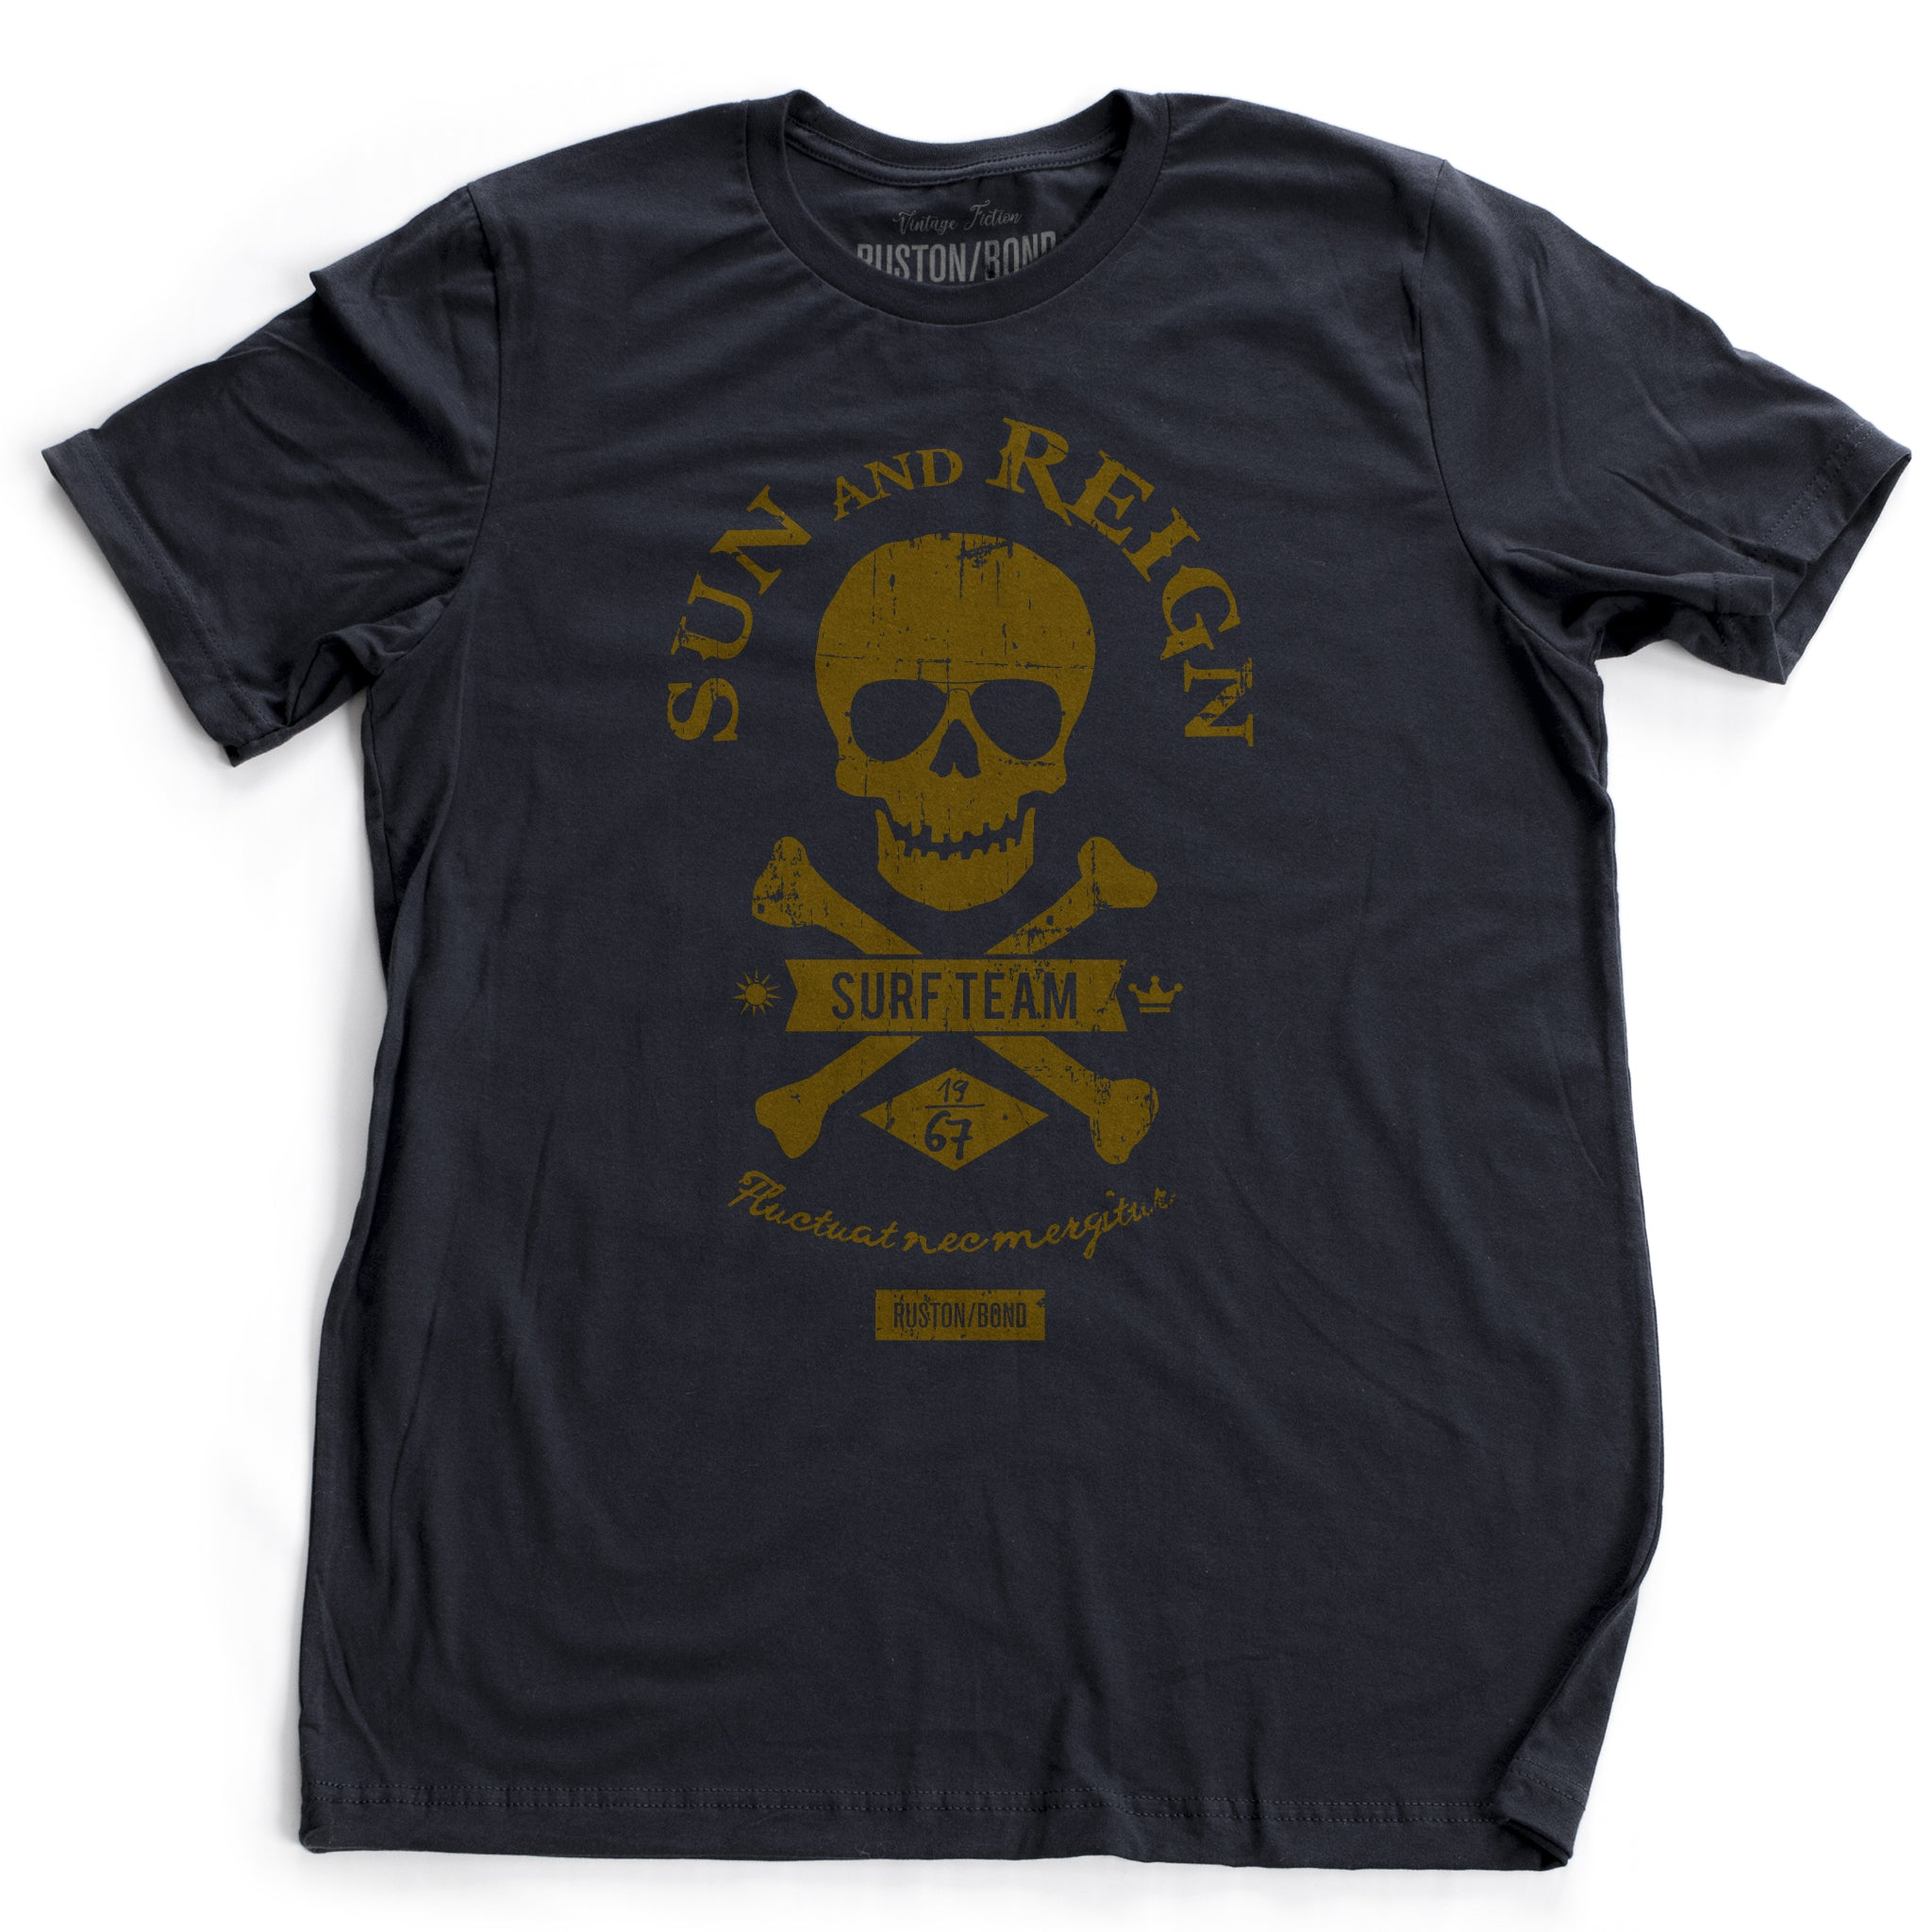 A fashionable, retro design t-shirt for a fictitious surf team. It features a skull and crossbones motif, surrounded by the typography SUN AND REIGN. By RUSTON/BOND, for wolfsaint.net